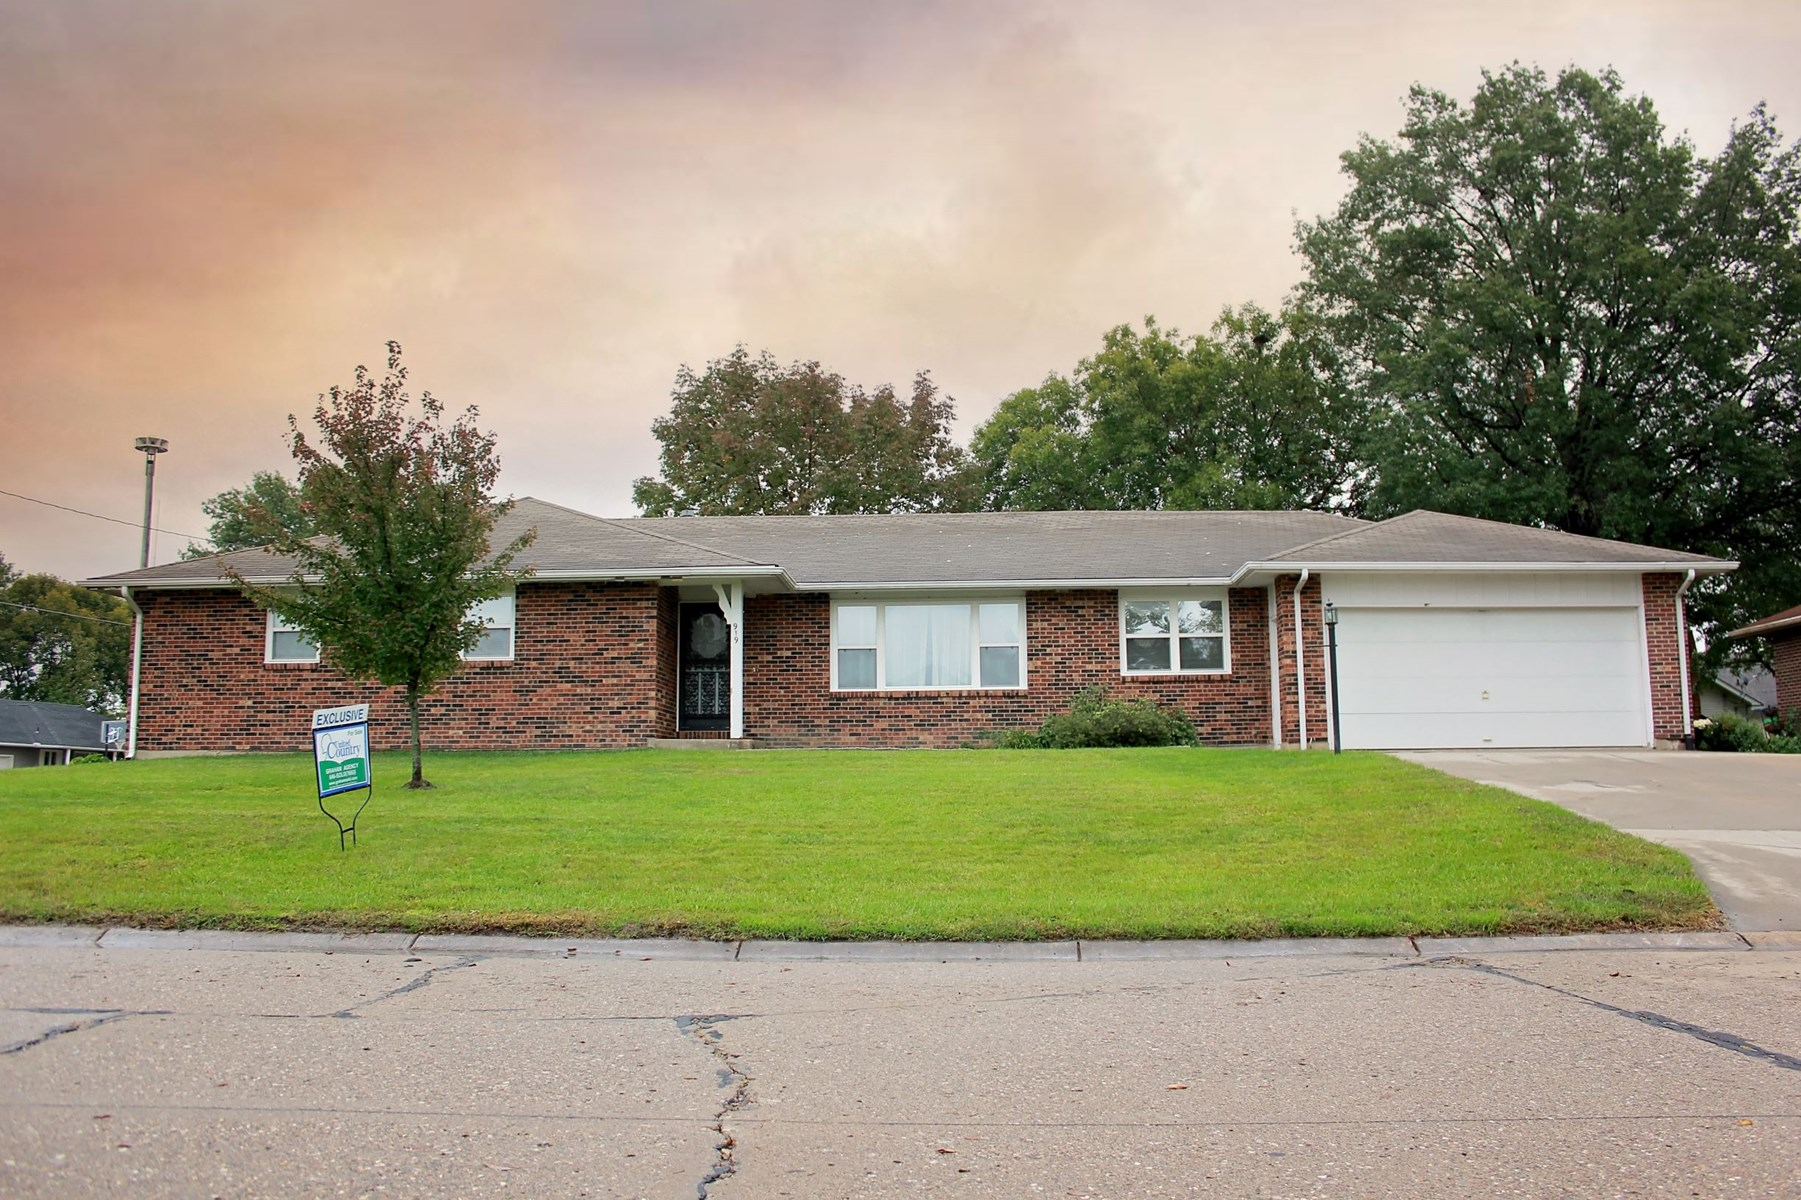 Large Brick Home on Corner Lot, For Sale, Chillicothe, MO